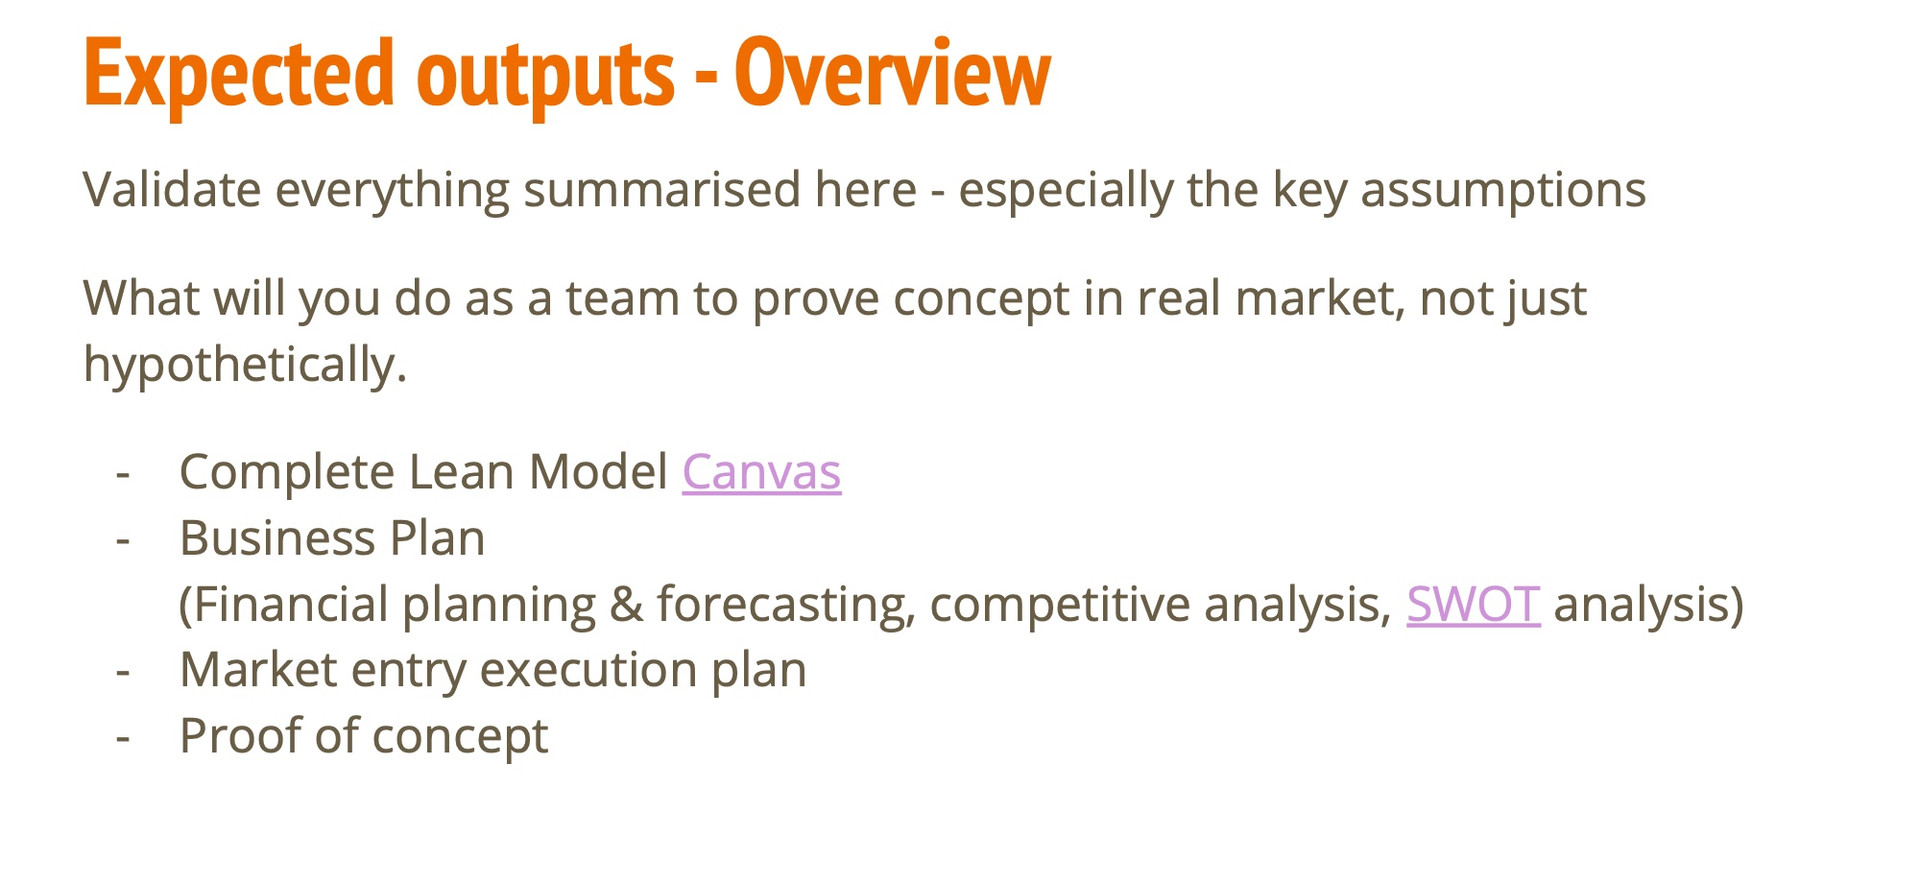 Expected Outputs- Overview